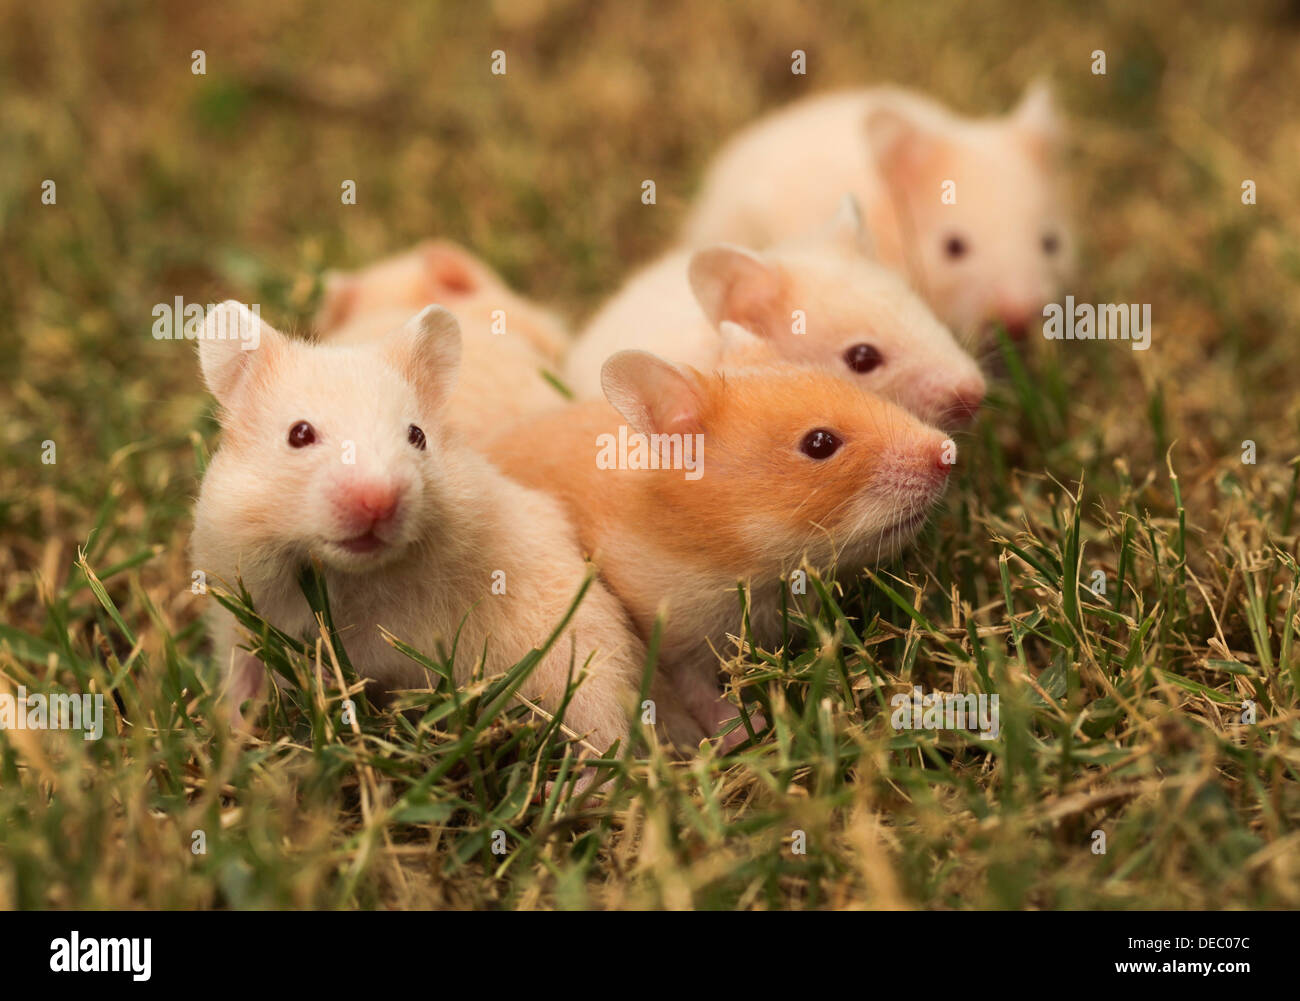 golden hamster or Syrian hamster, (Mesocricetus auratus) with her young litter on the lawn - Stock Image